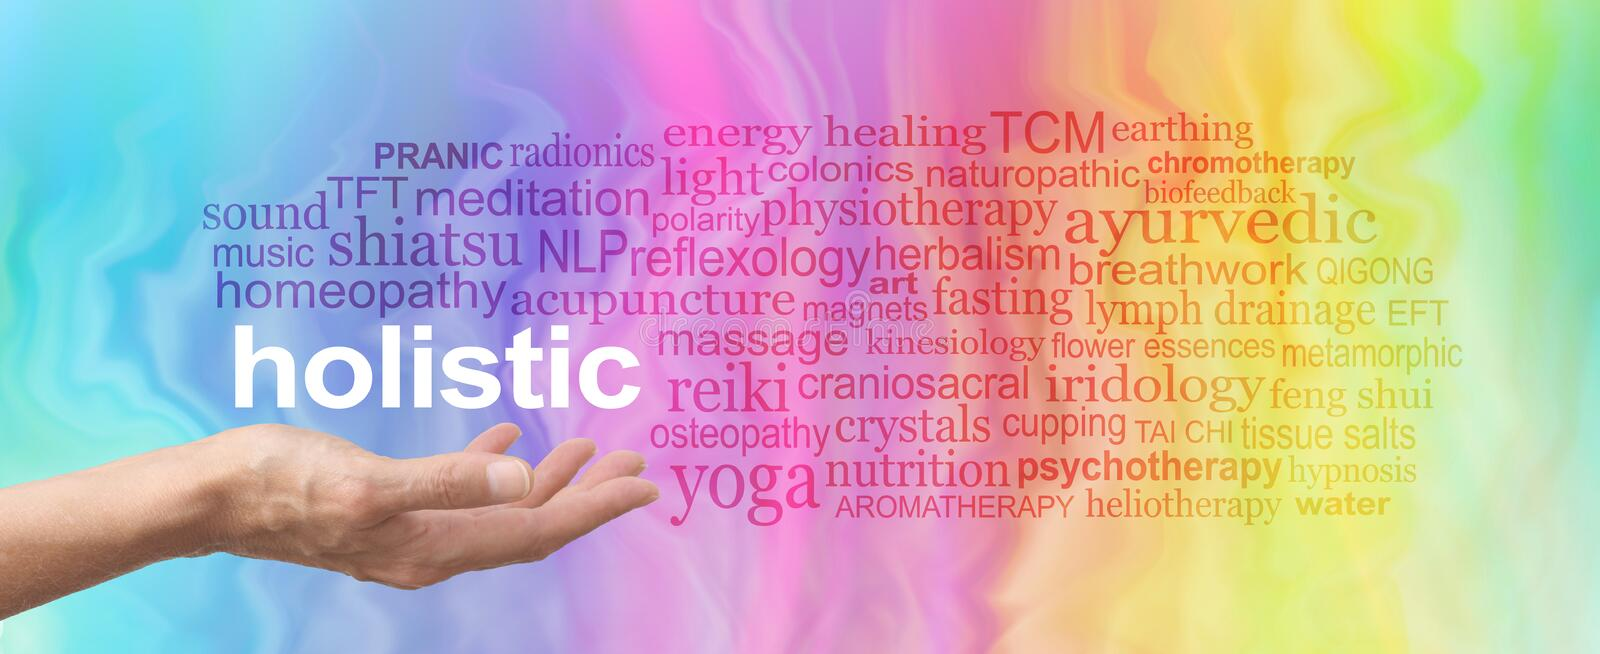 Holistic Therapy Word Cloud. Female hand held palm up the word HOLISTIC in white above surrounded by a relevant word cloud on a rainbow colored marble effect royalty free stock photography